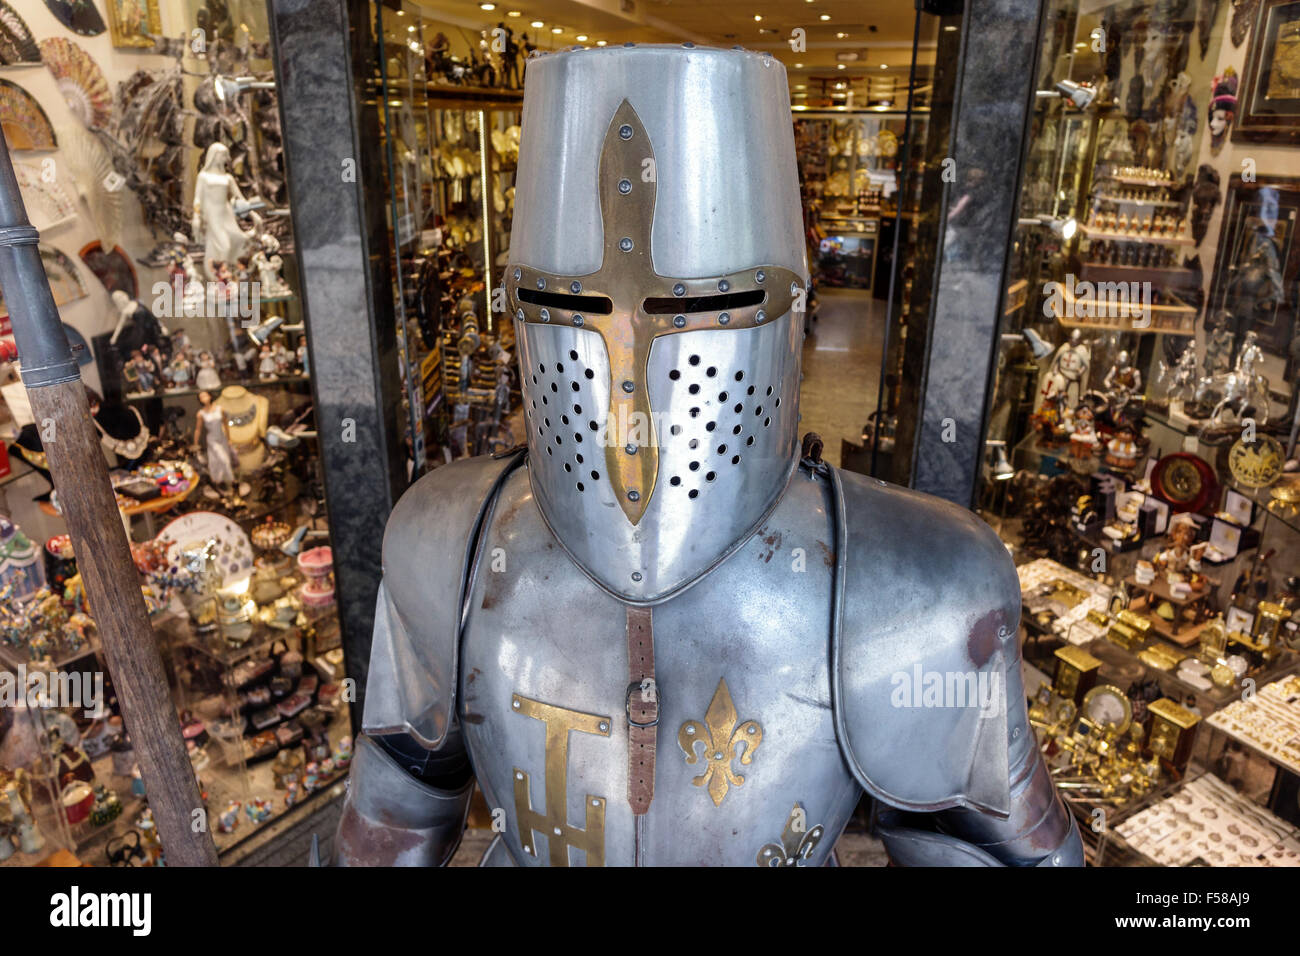 Toledo Spain Europe Spanish store business shopping forged metals souvenirs gift shop suit of armor armour Medieval - Stock Image